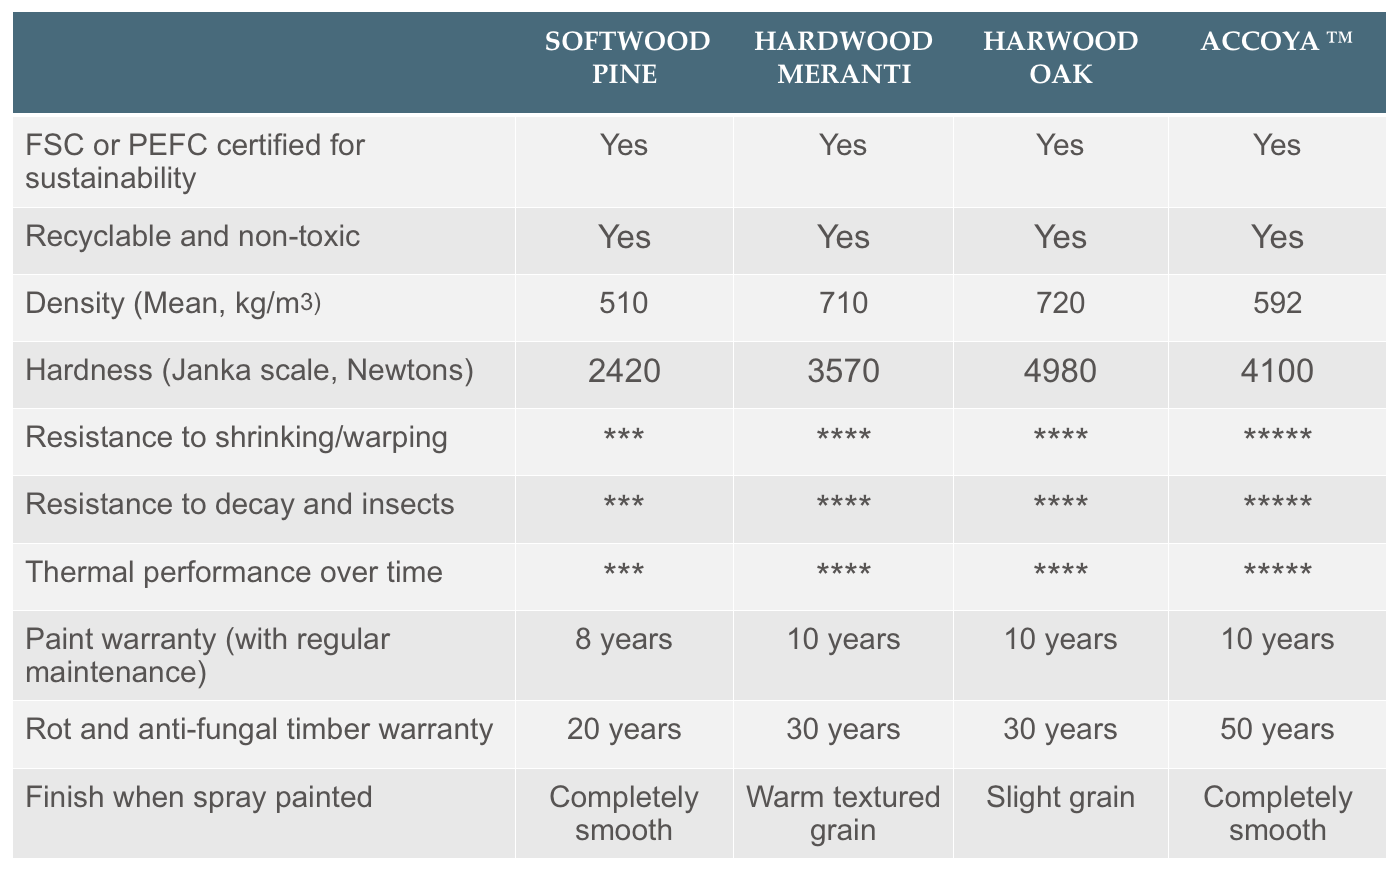 Sashed timber comparison table